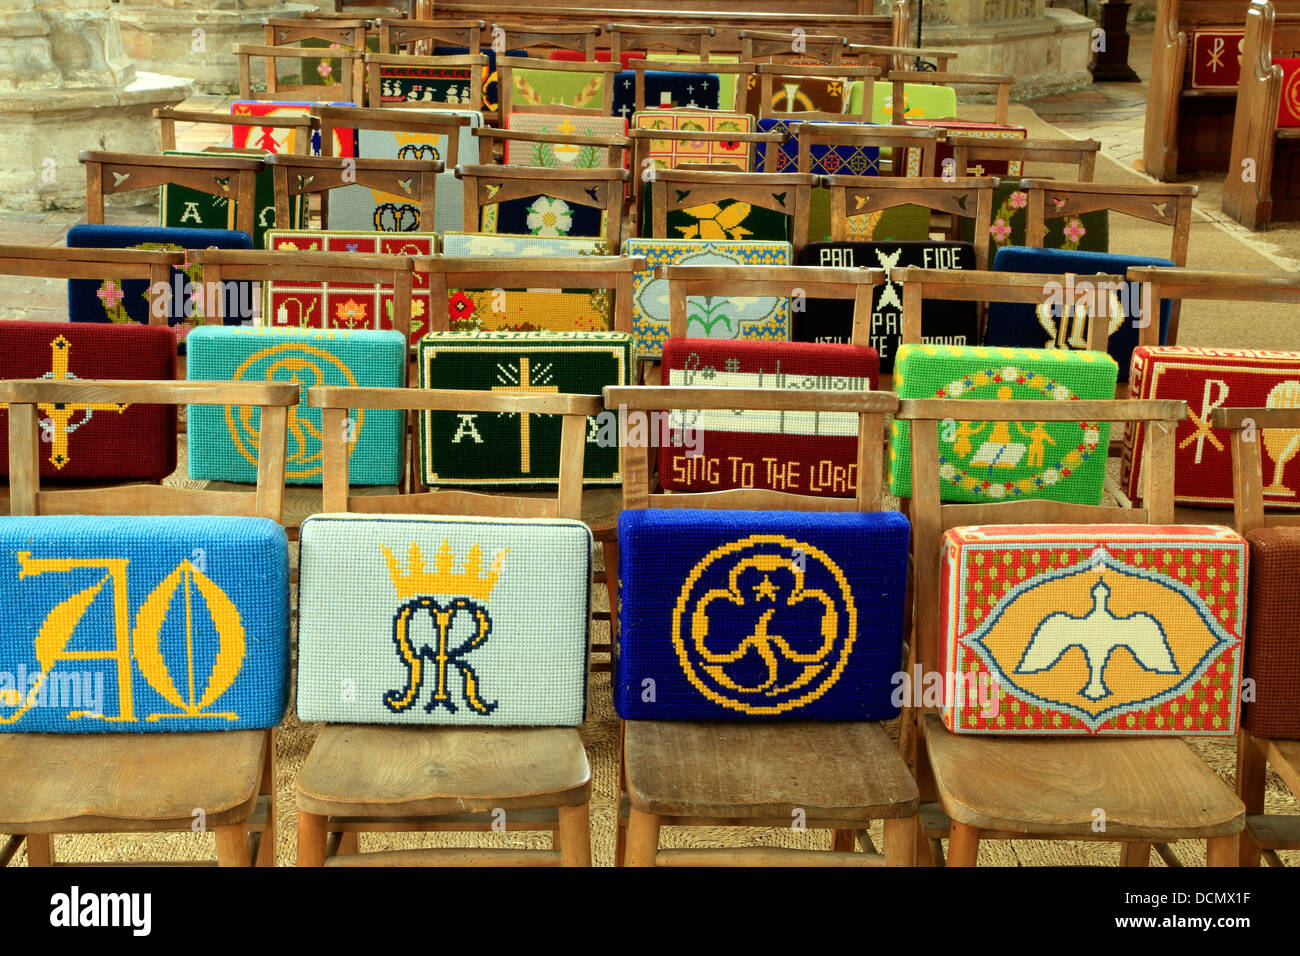 Amazing Church Kneeler Cushions #1: Church-kneeling-cushions-pew-pews-chair-chairs-embroidered-embroidery-DCMX1F.jpg